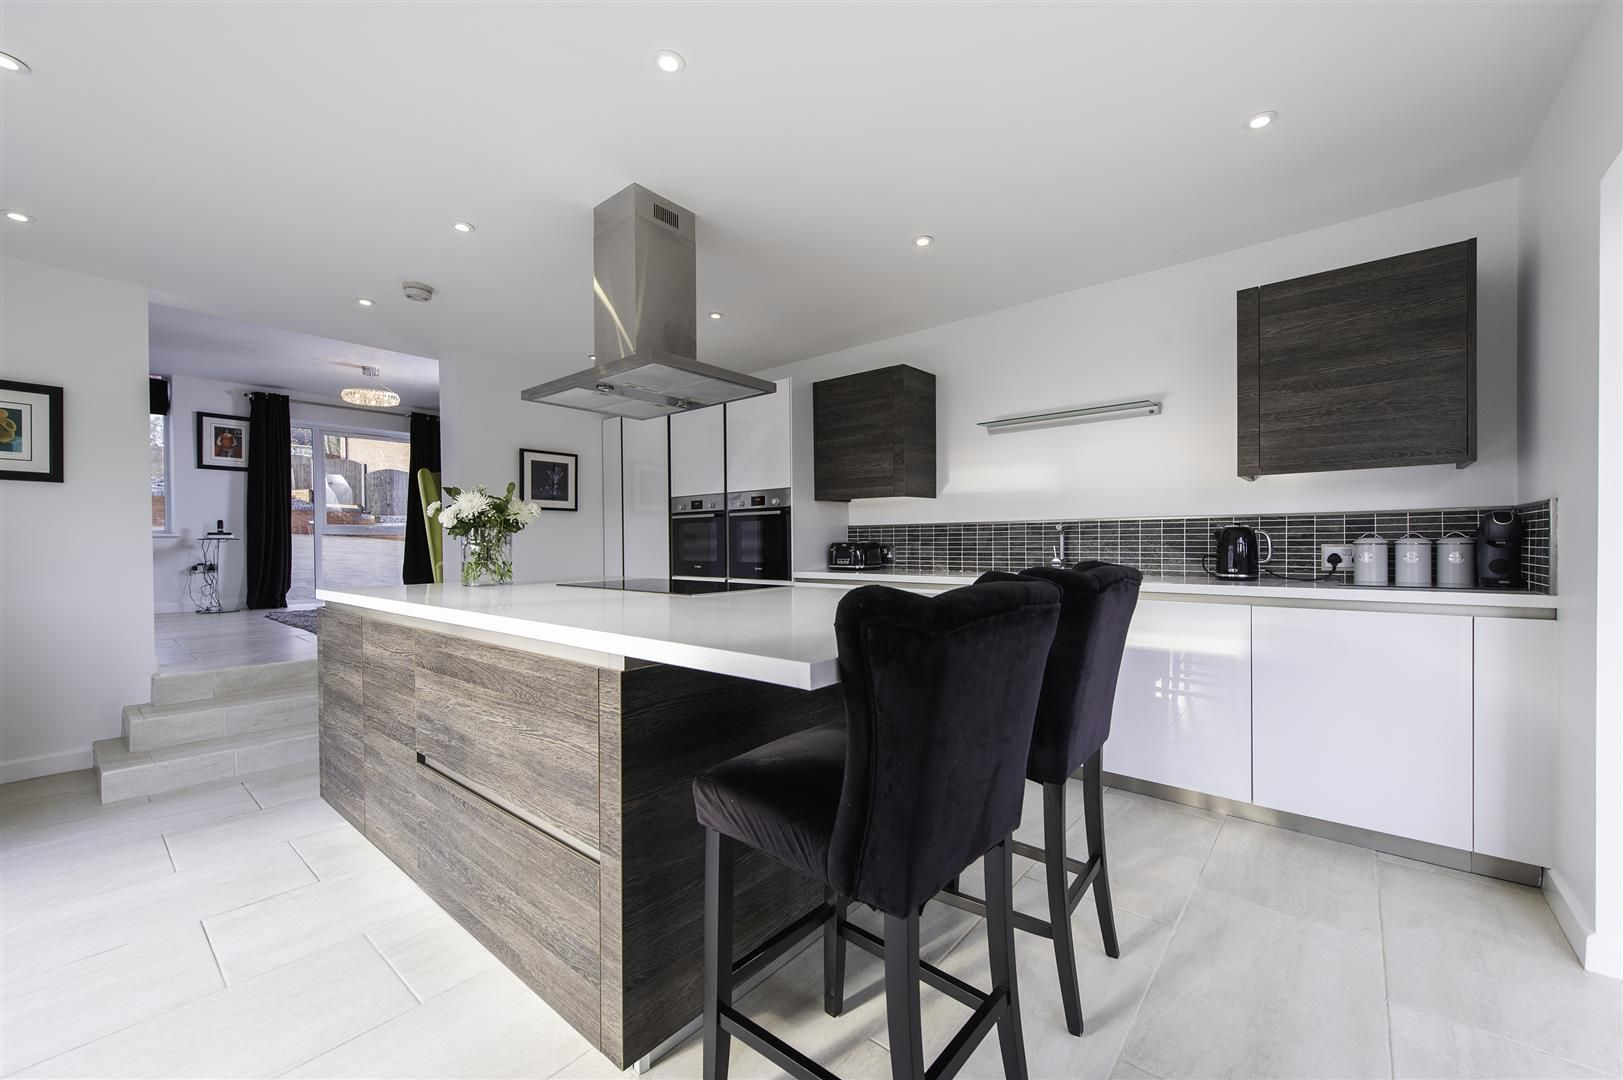 4 bed detached for sale in Stourton  - Property Image 6